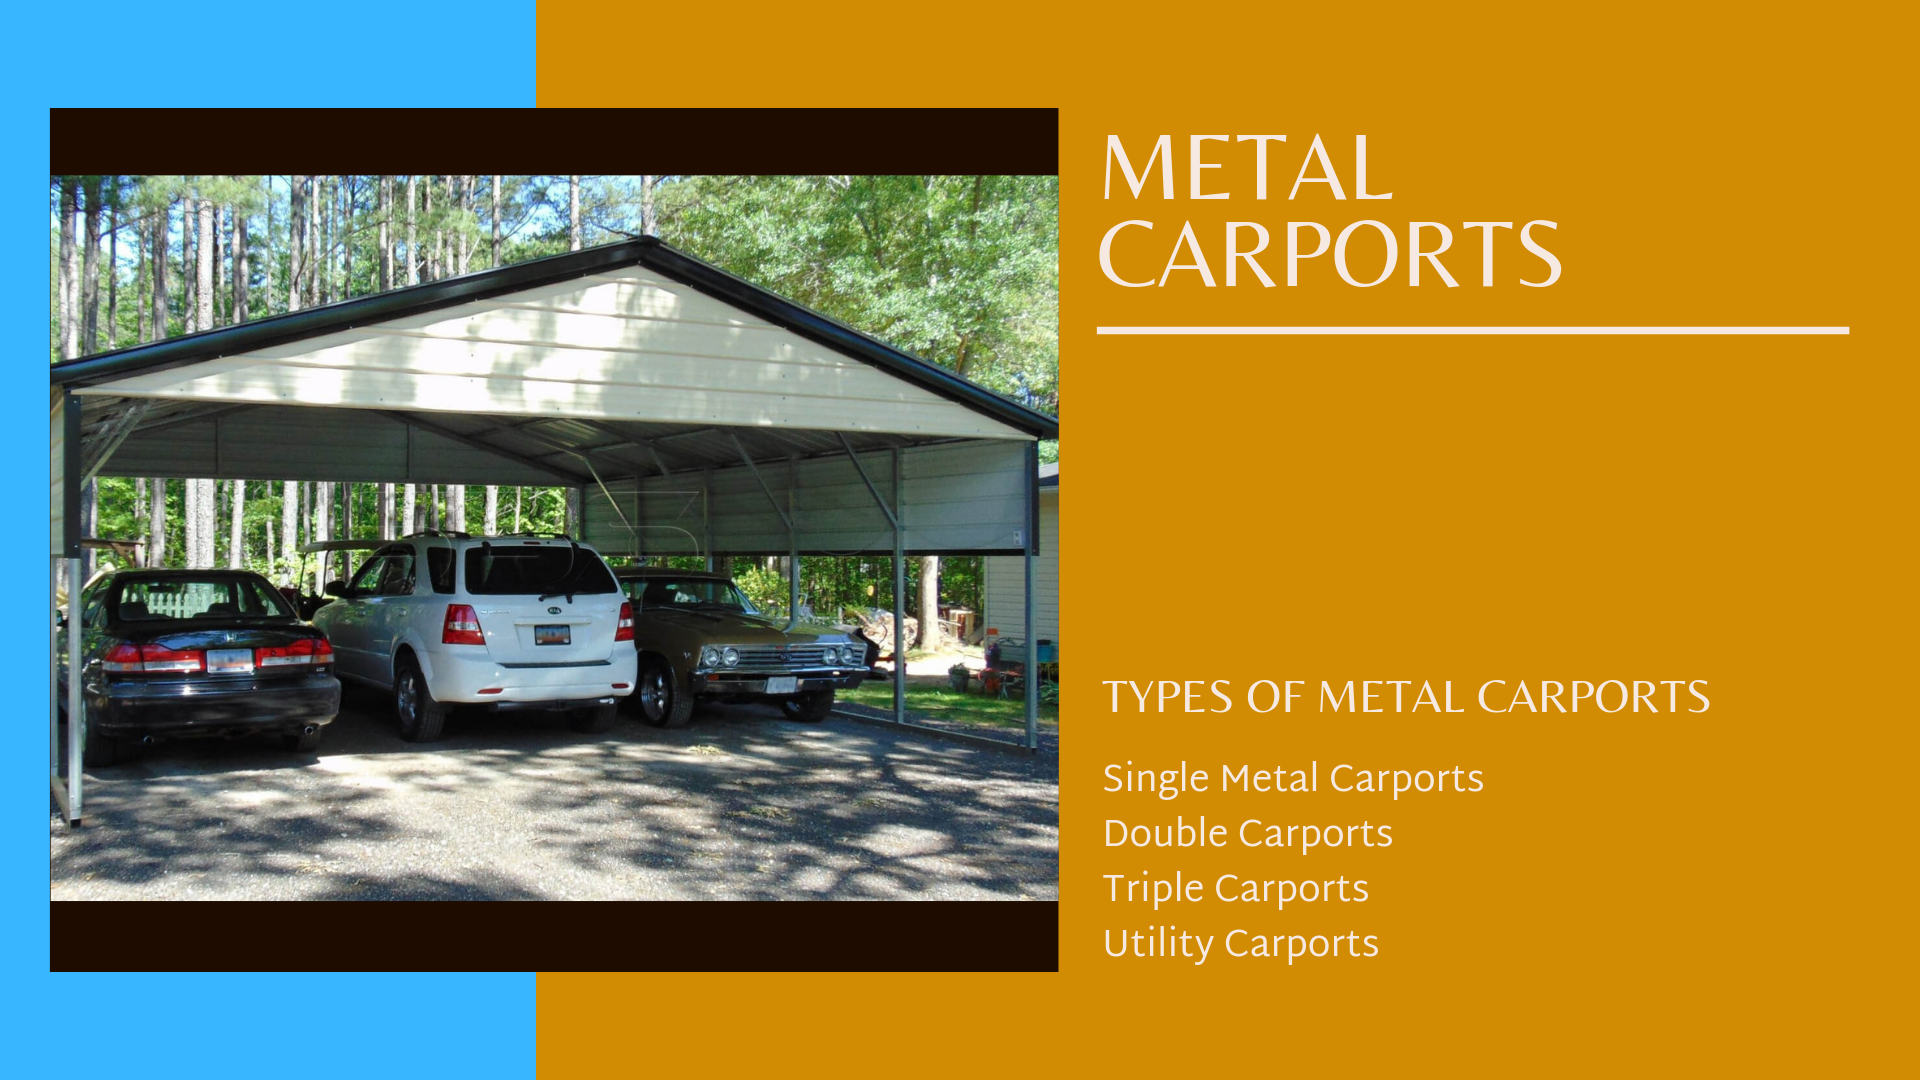 Metal Carports Direct provides a highquality metal